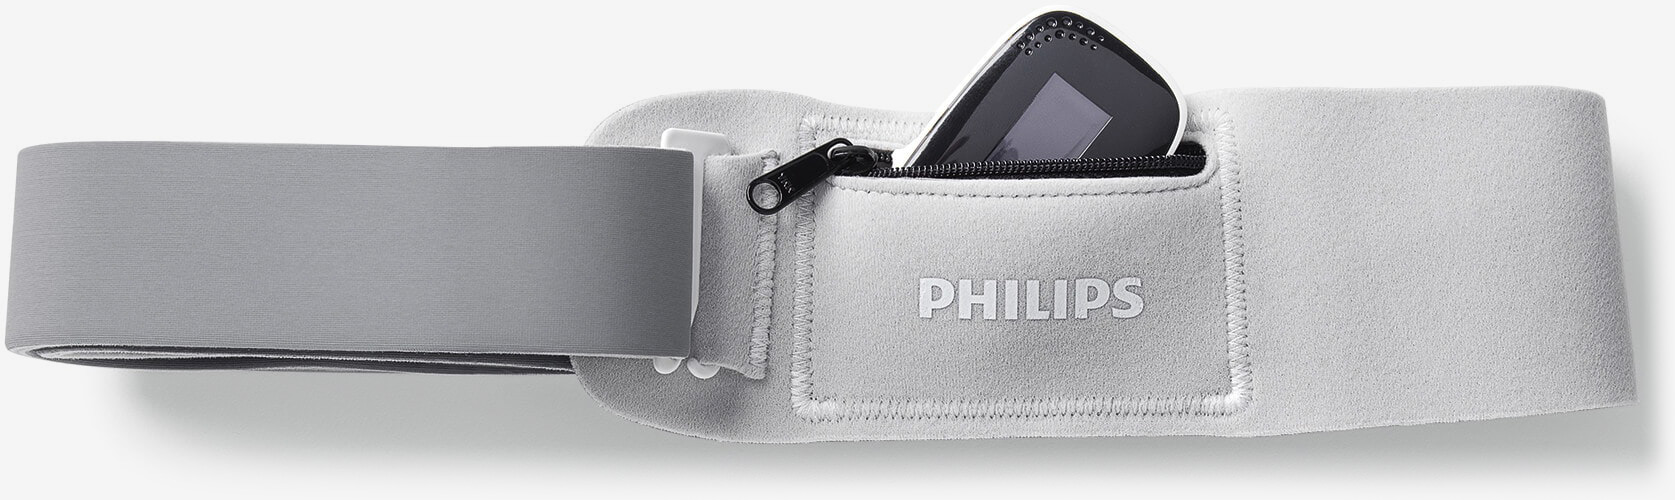 philips nightbalance posa with strap